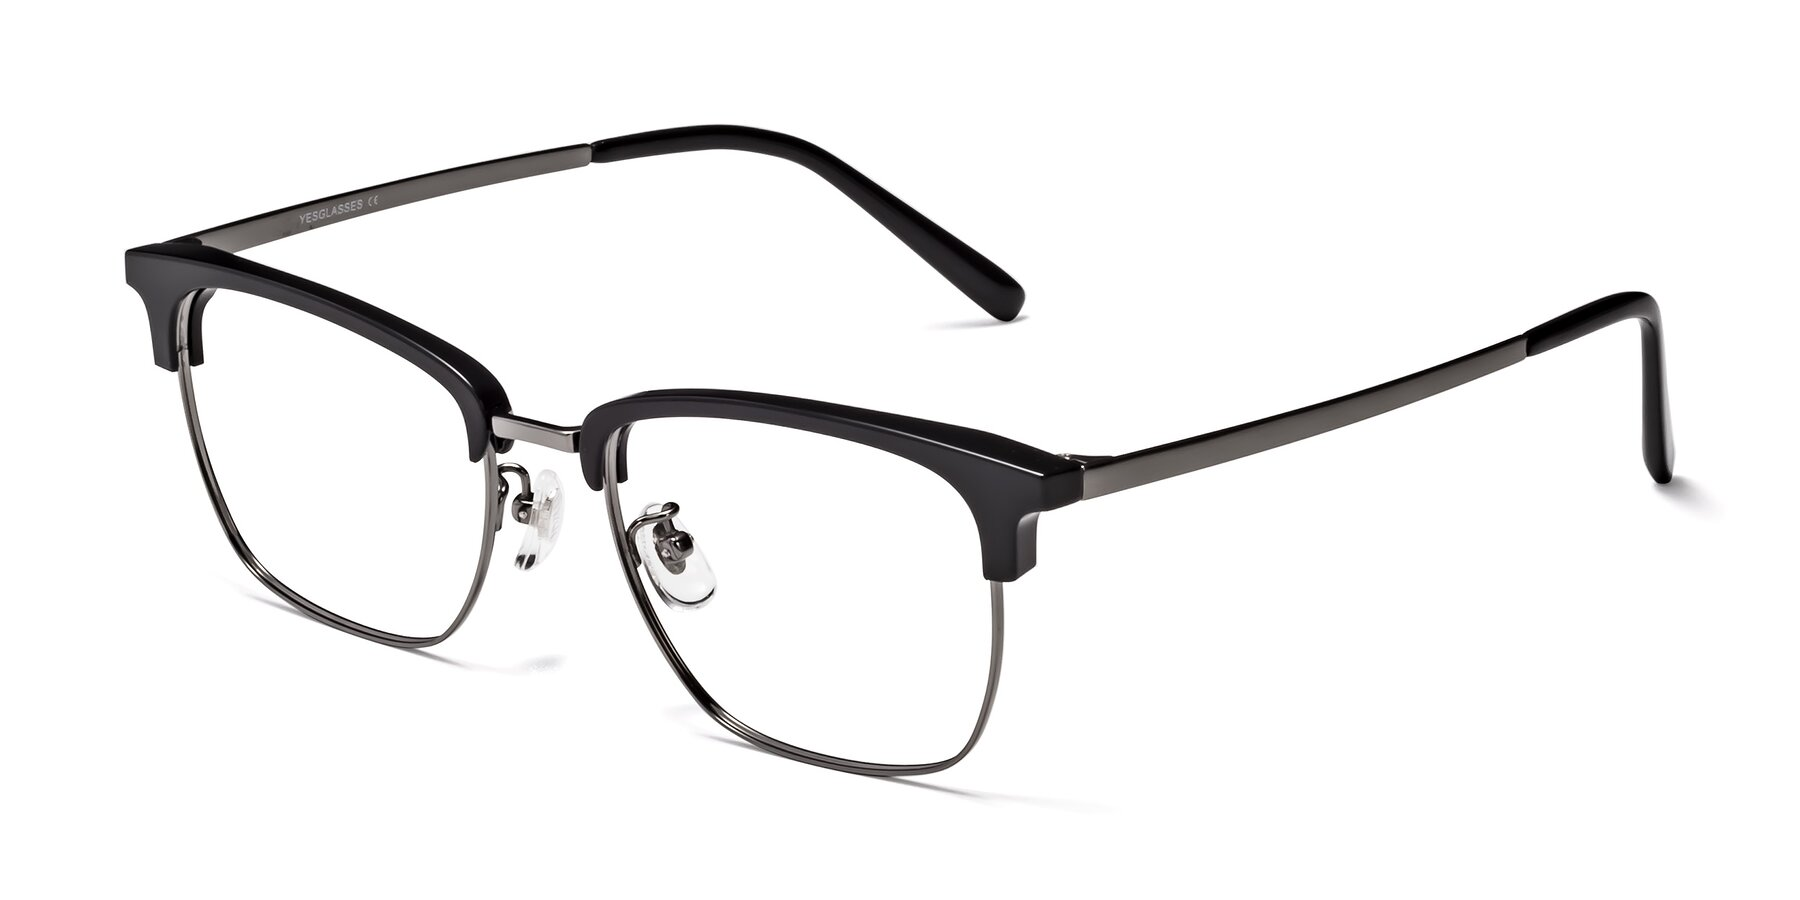 Angle of Milpa in Black-Gunmetal with Clear Blue Light Blocking Lenses